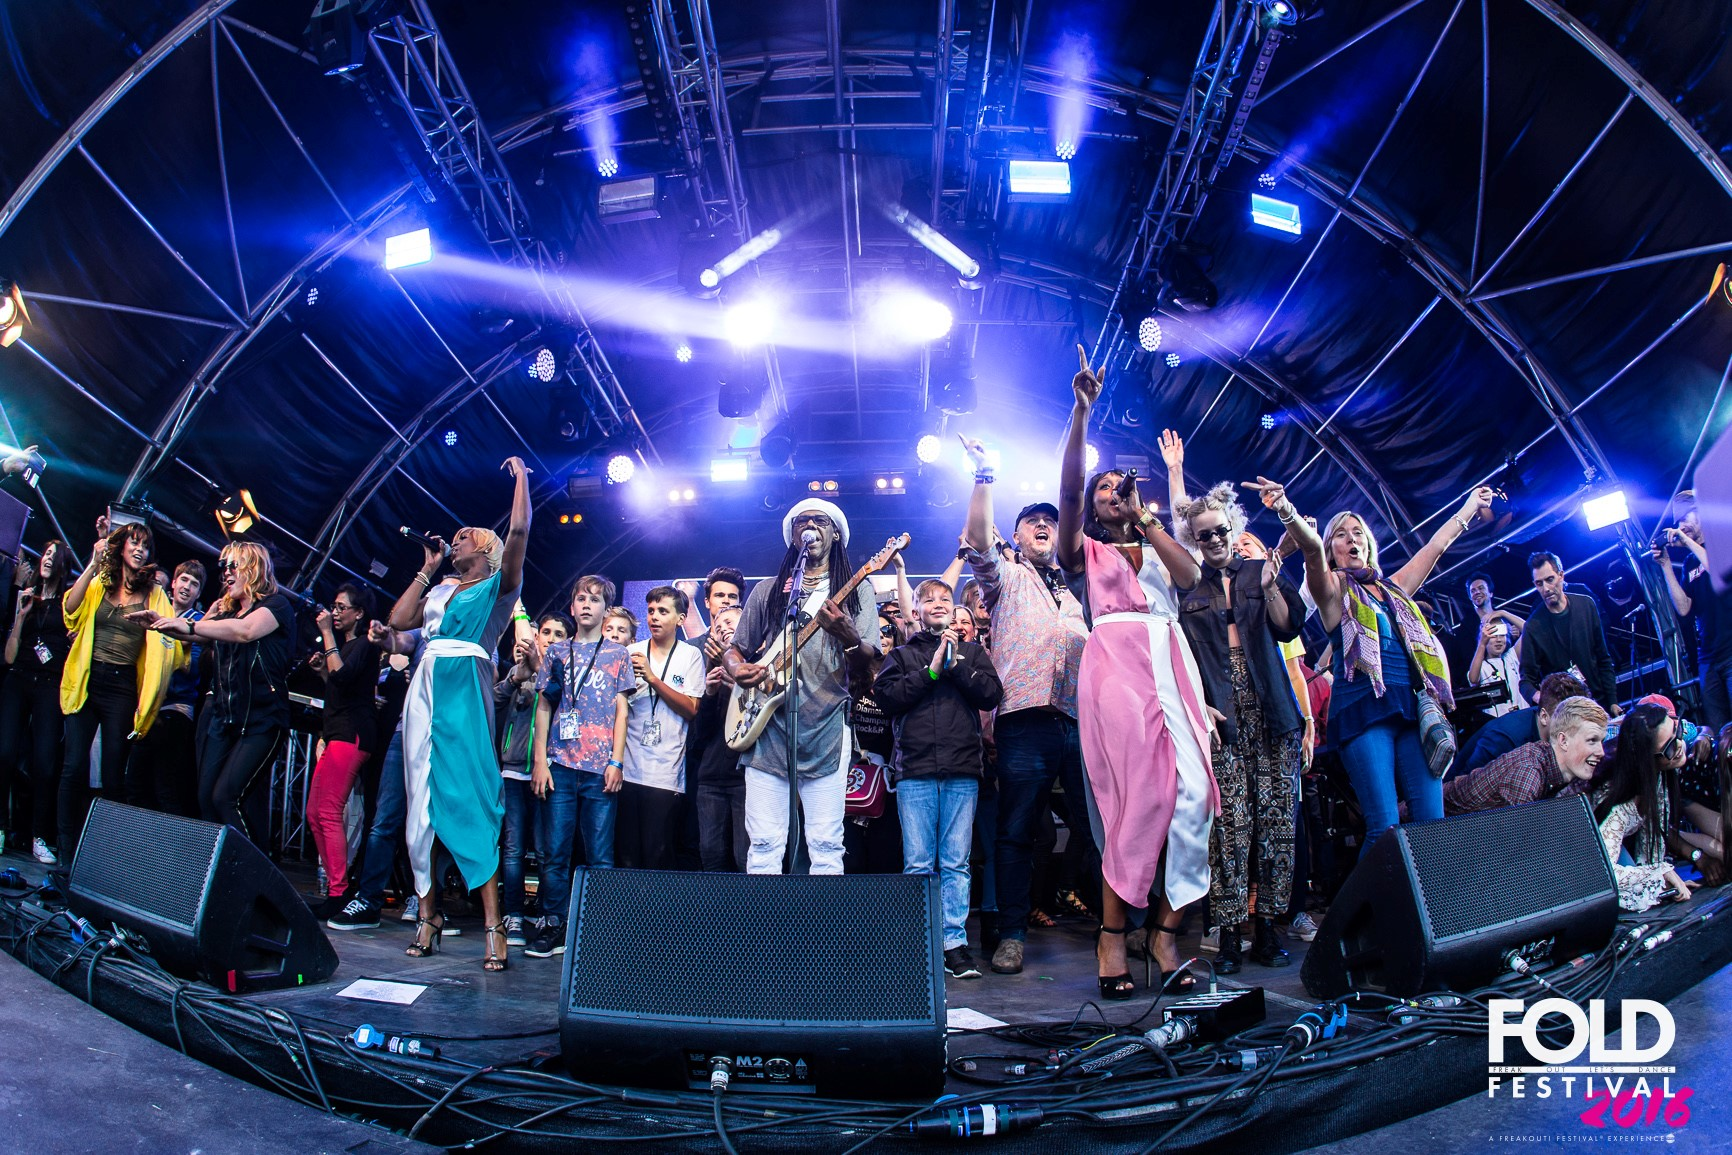 Fold Festival London 2016 Review - Chic